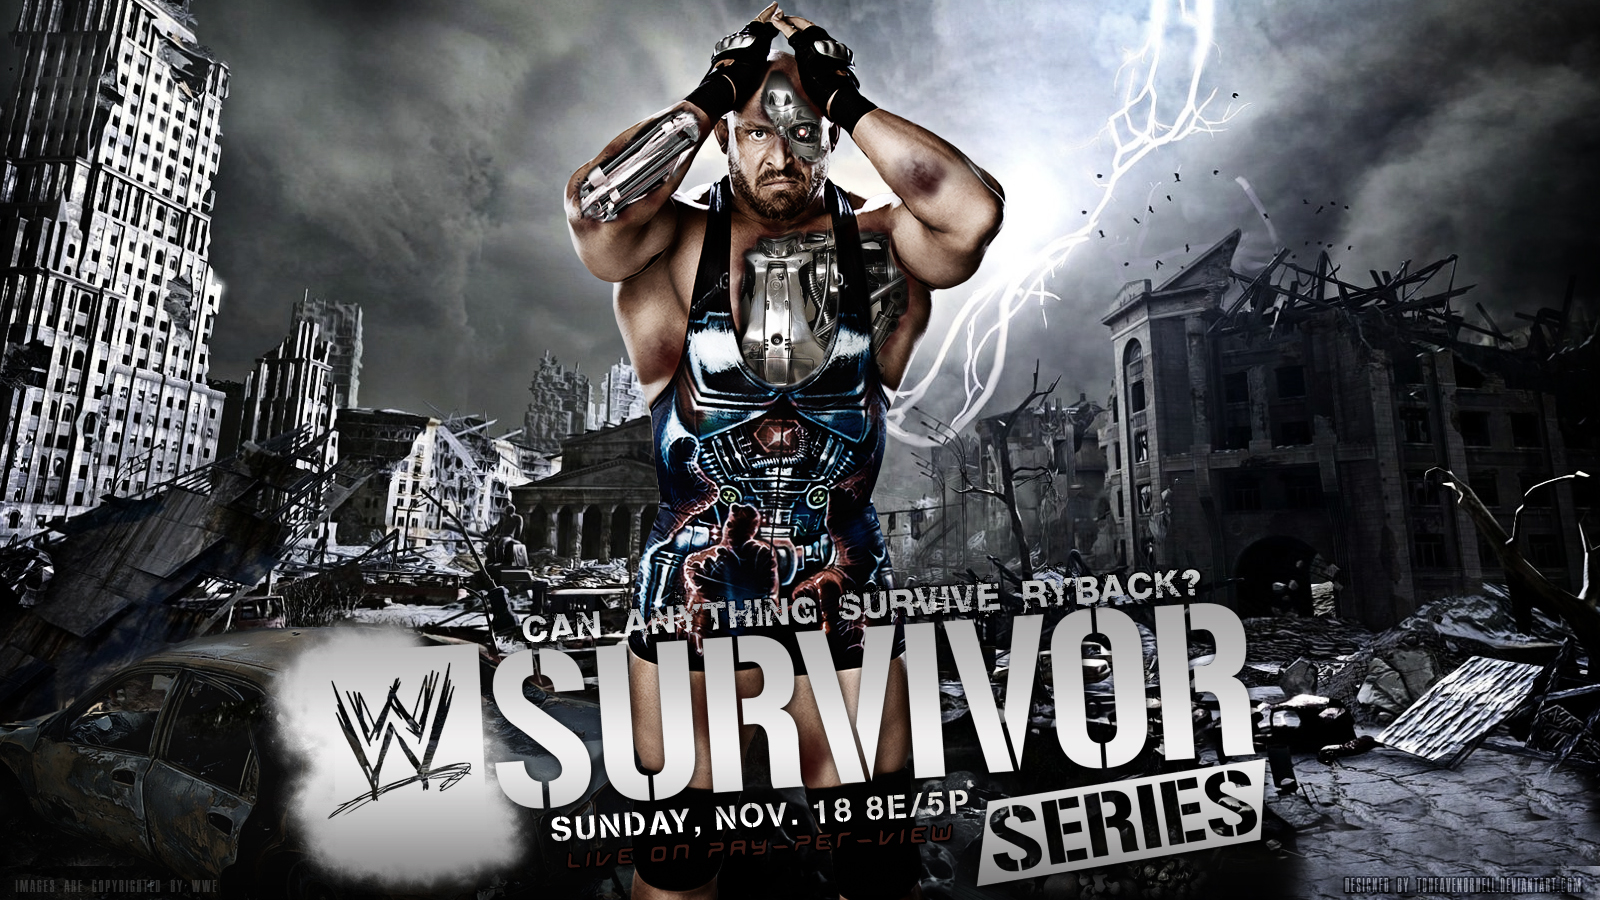 WWE Survivor Series 2012 Wallpaper Ryback by ToHeavenOrHell